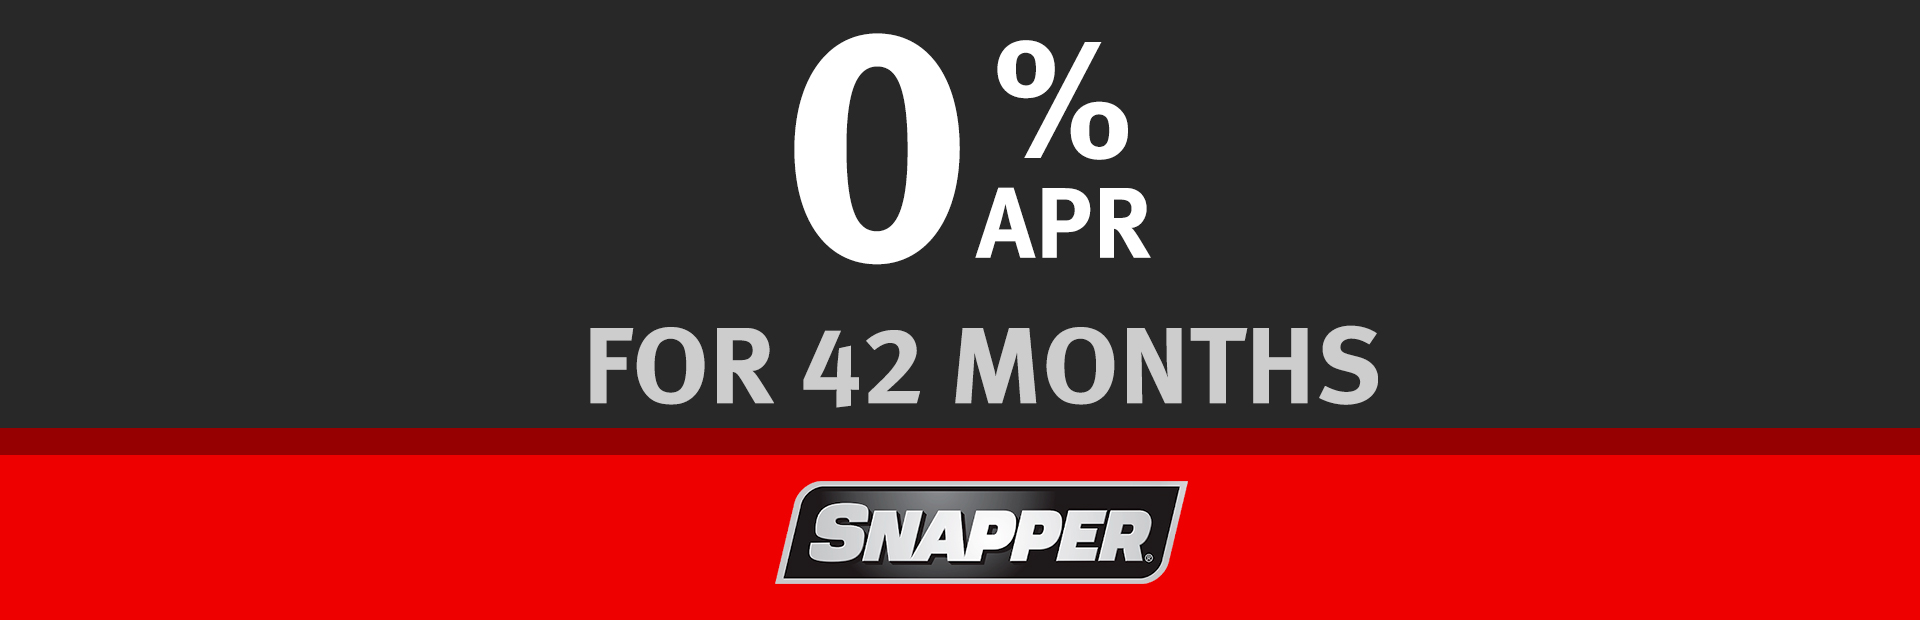 Snapper: 0% for 42 Months